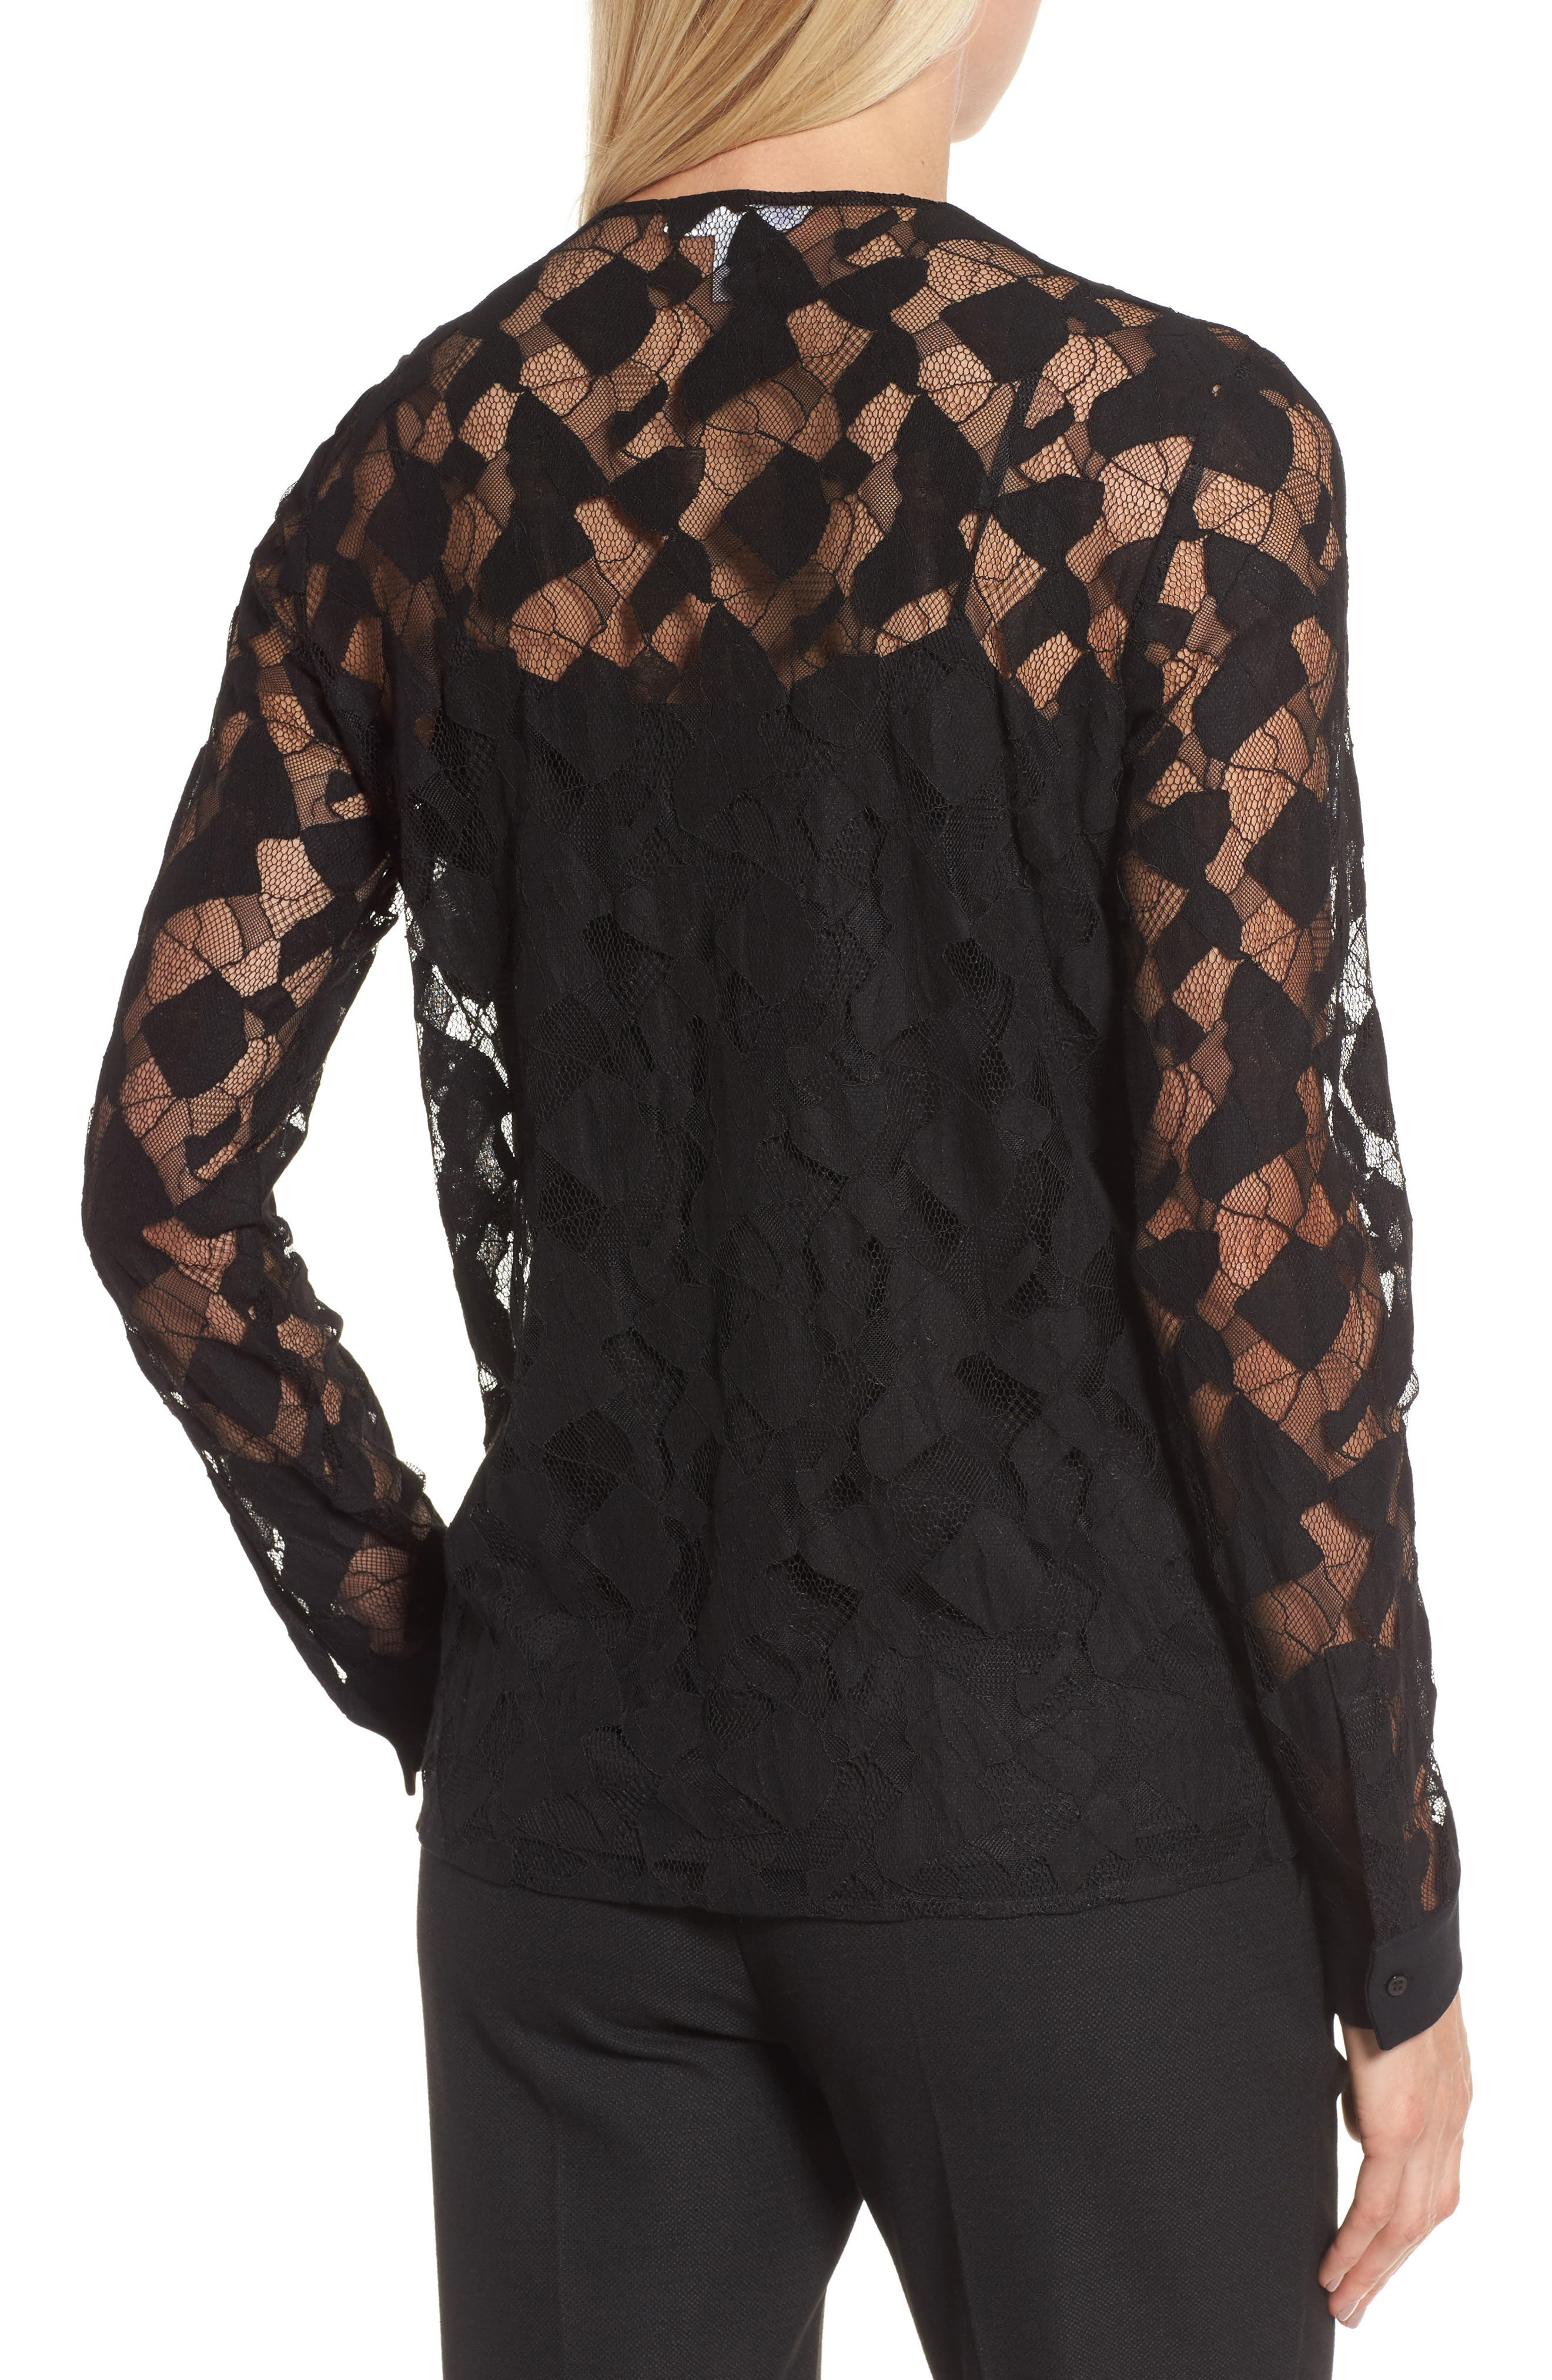 Banela Lace Blouse,                             Alternate thumbnail 2, color,